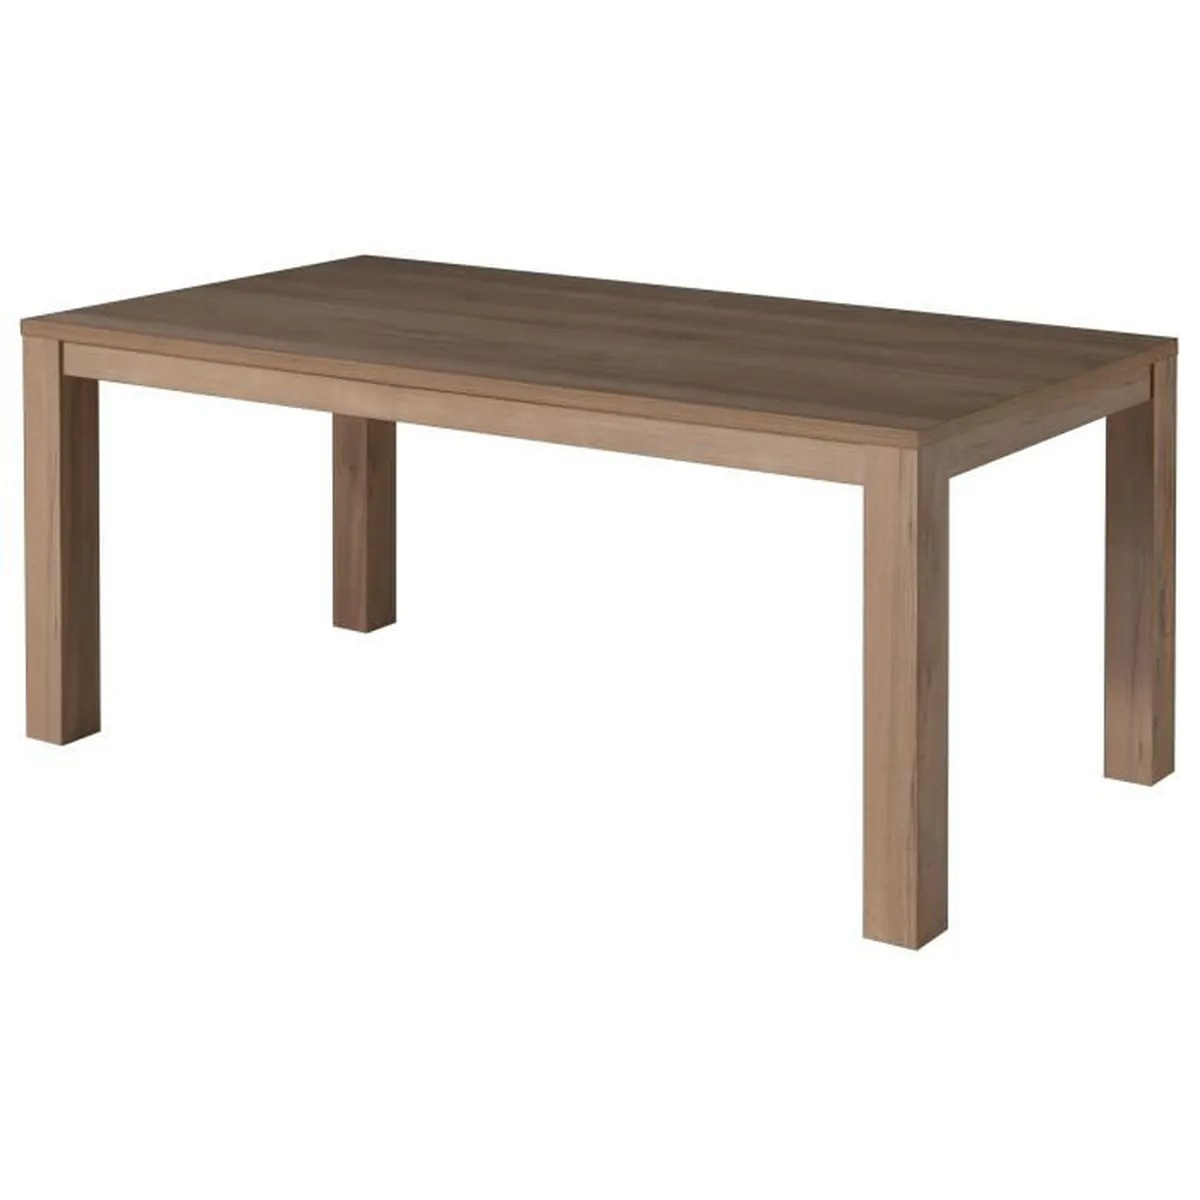 Dimension Table Ronde 6 Personnes Dimension Table 6 Personnes Interesting Dimension